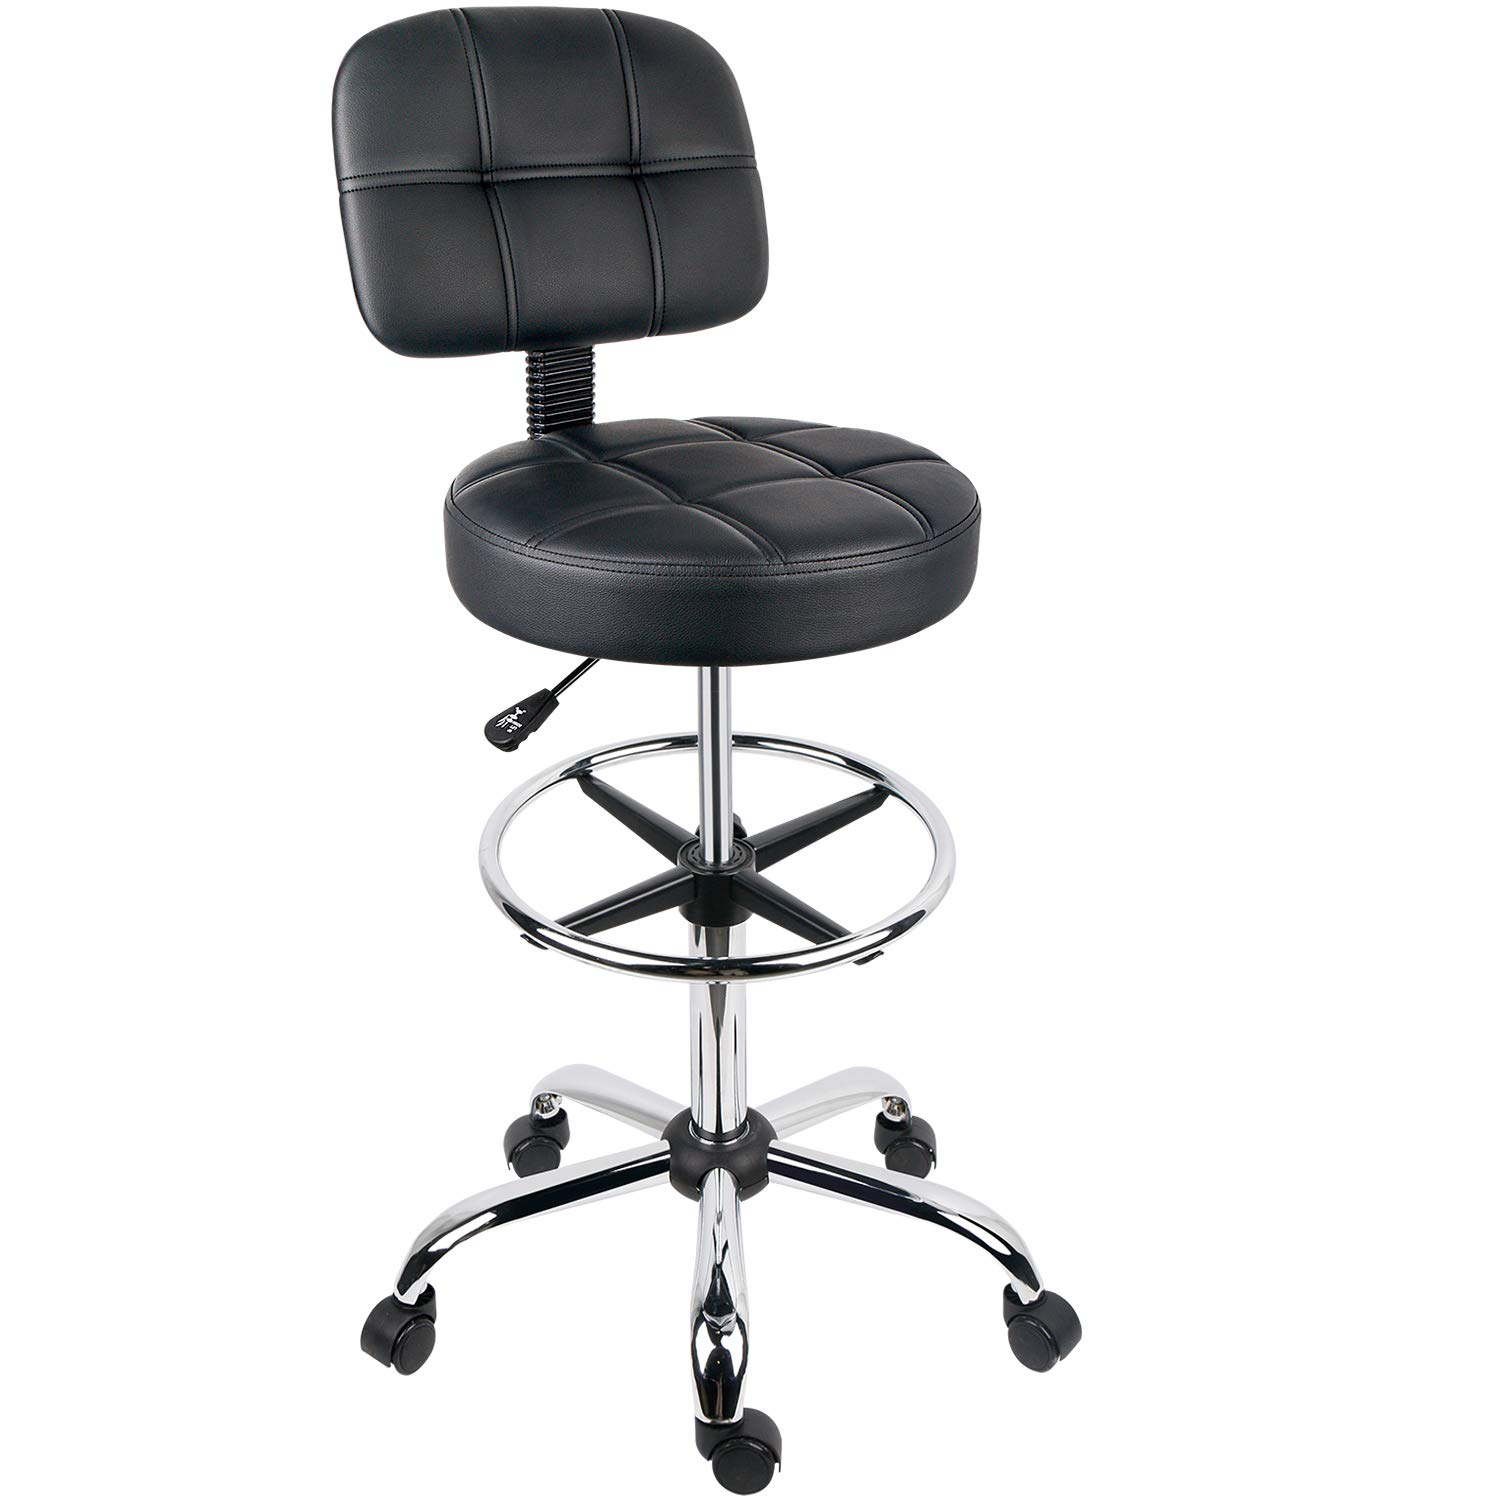 Leopard Round Drafting Chair, Adjustable Swivel Tall Drafting Stool Office Chair for Standing Desk, with Back and Footring - Black by Leopard Outdoor Products